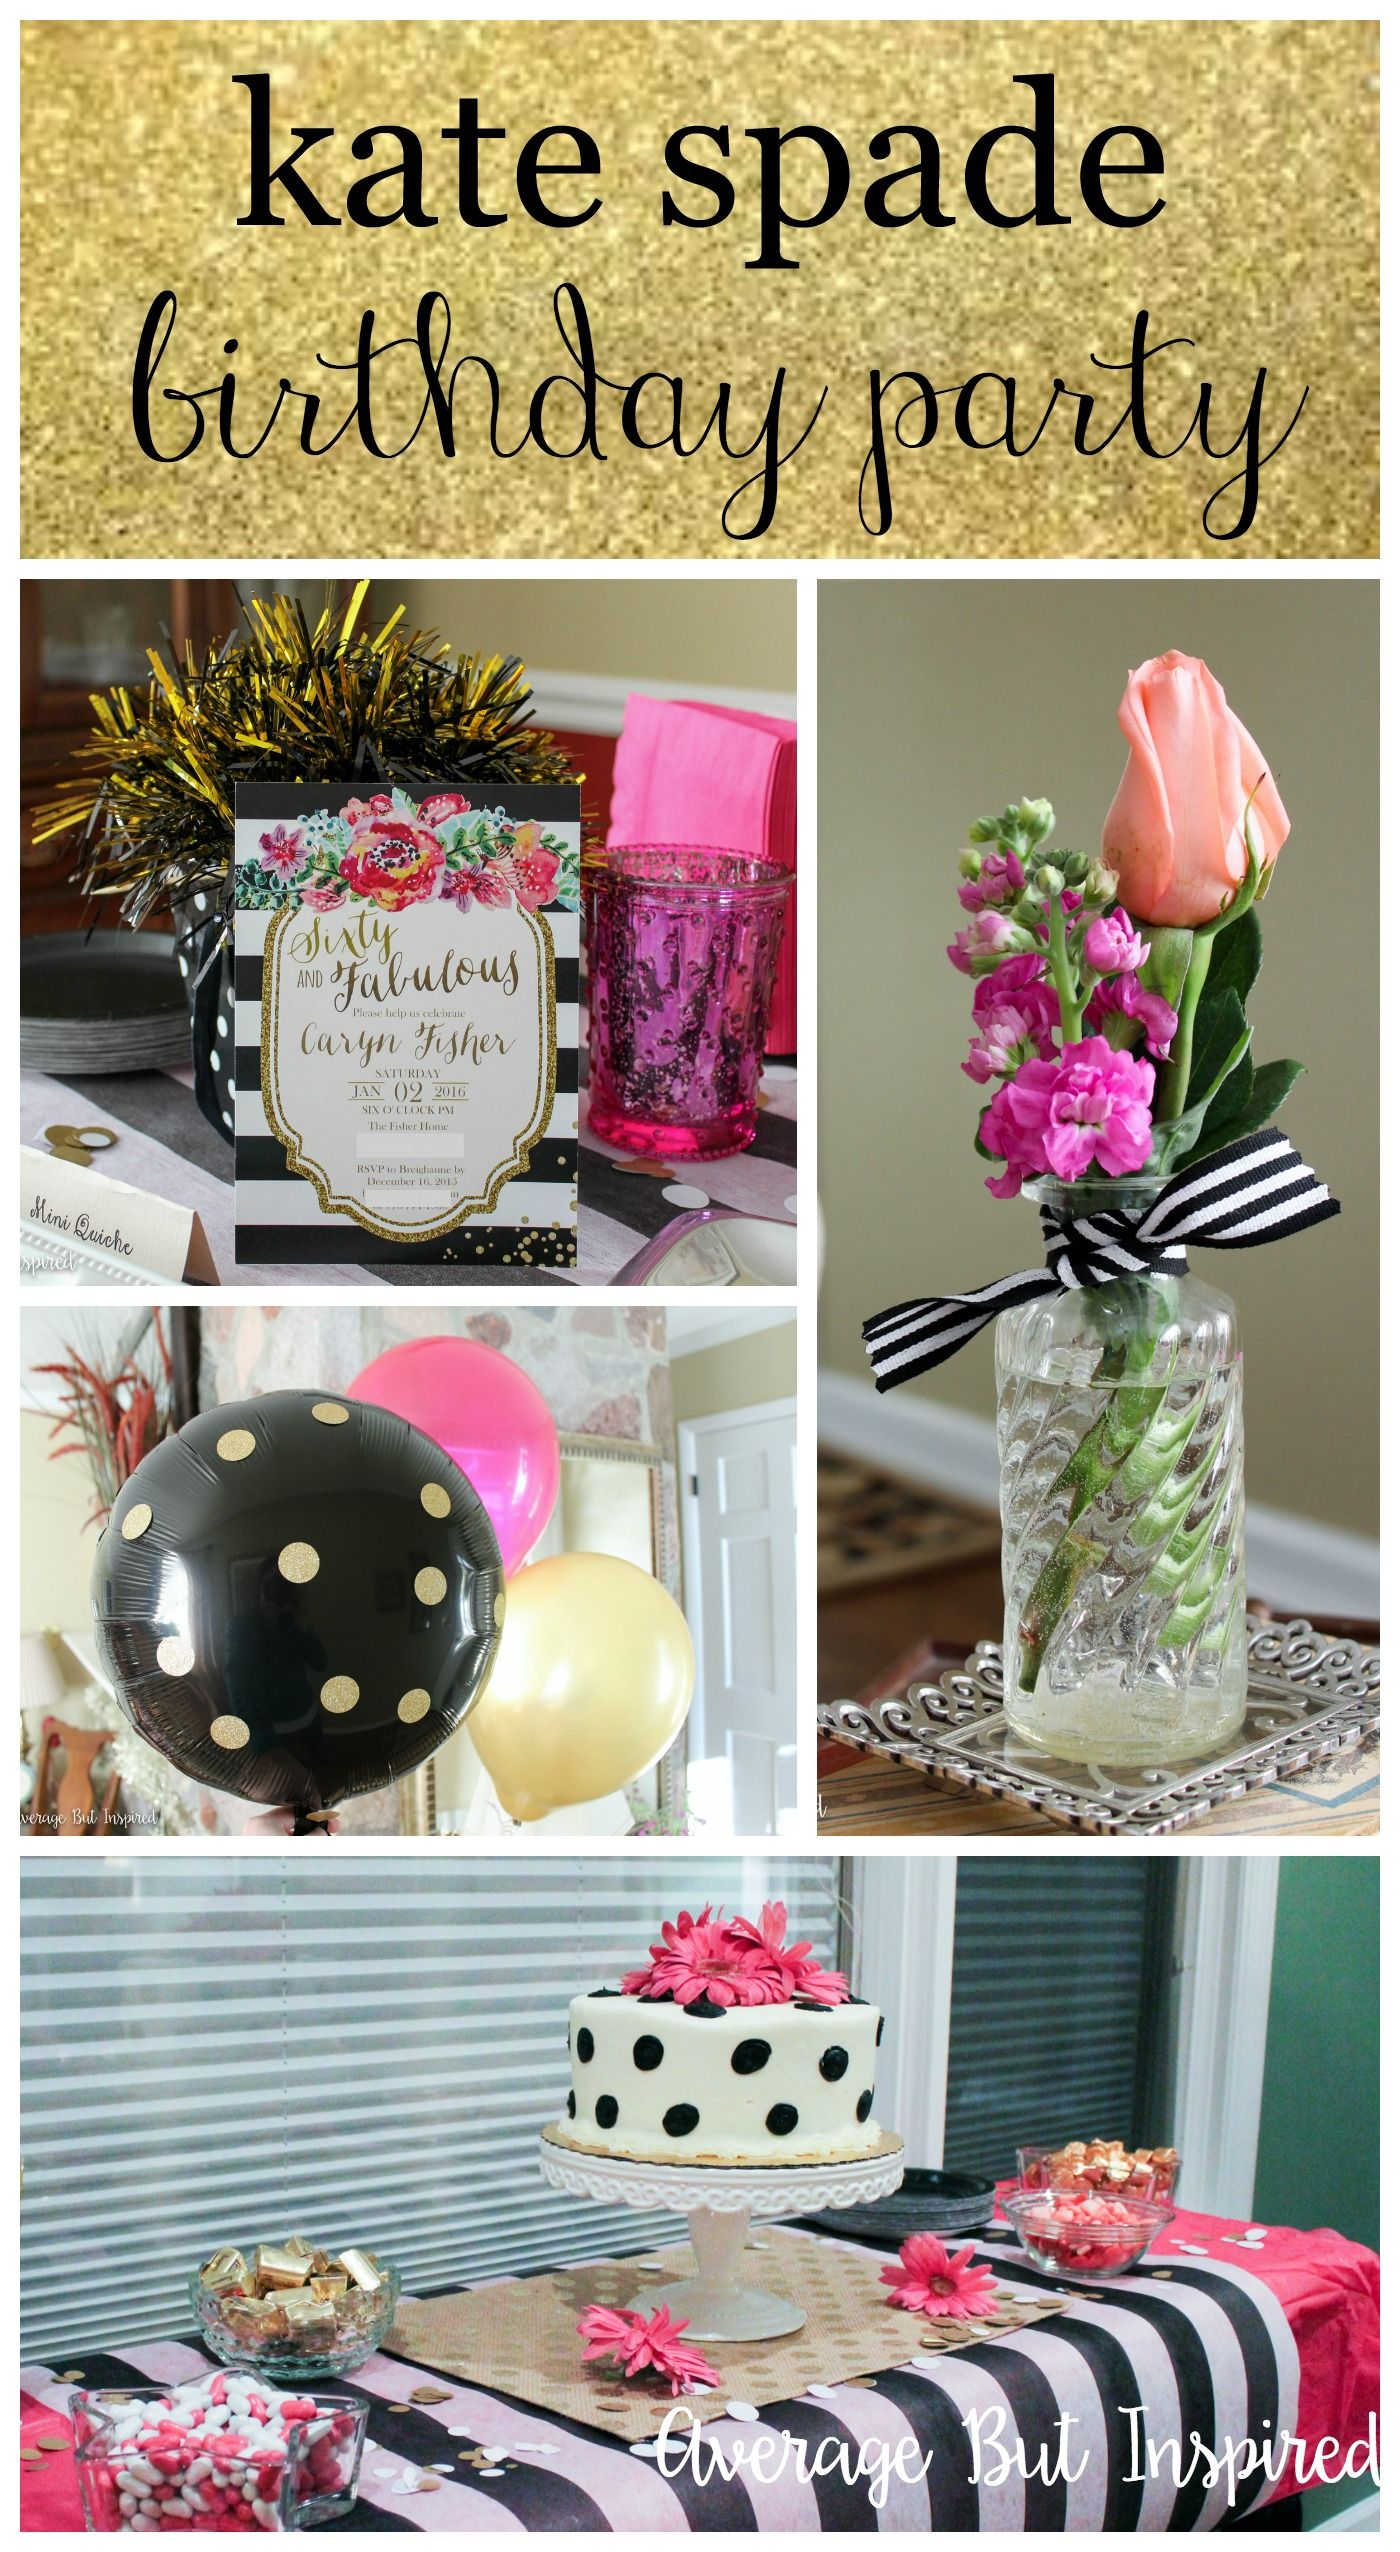 So Cute This Kate Spade Inspired Birthday Party Post Is Full Of Decor Ideas And Inspiration For Any Adorably Fabulous You May Be Planning